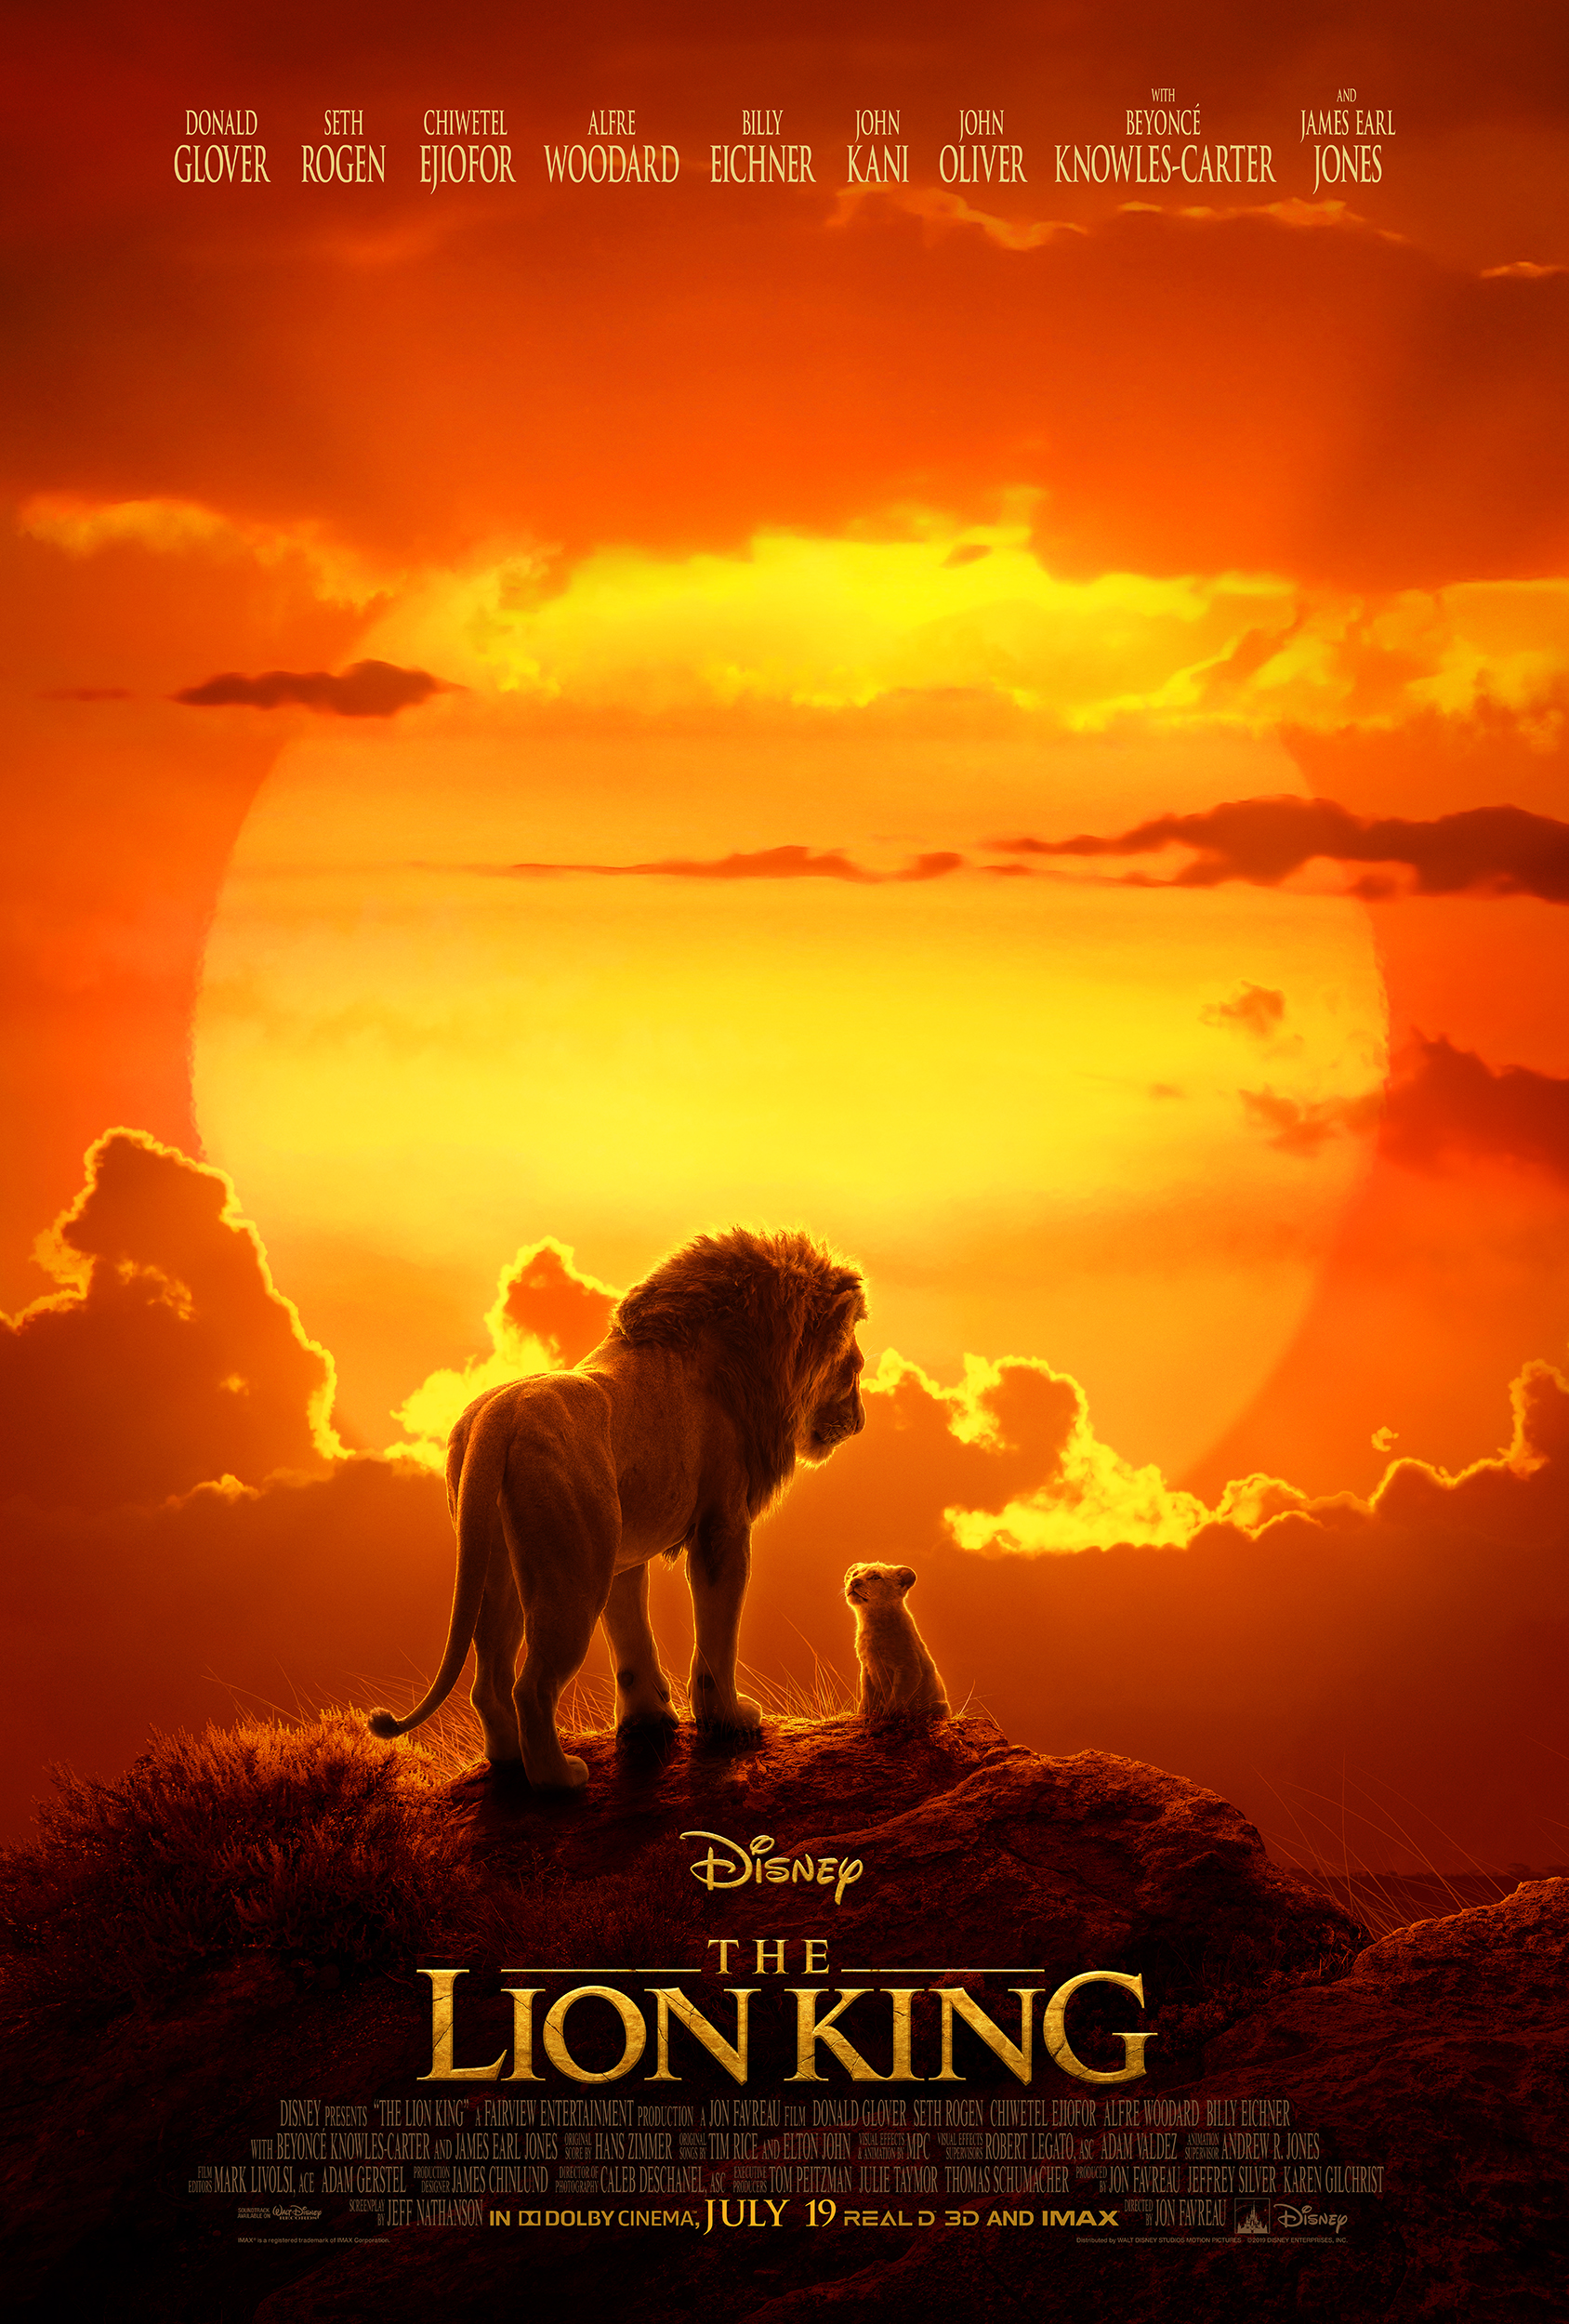 Looking for a mom's review of the Lion King? I'm telling you everything you need to know before bringing your kids!